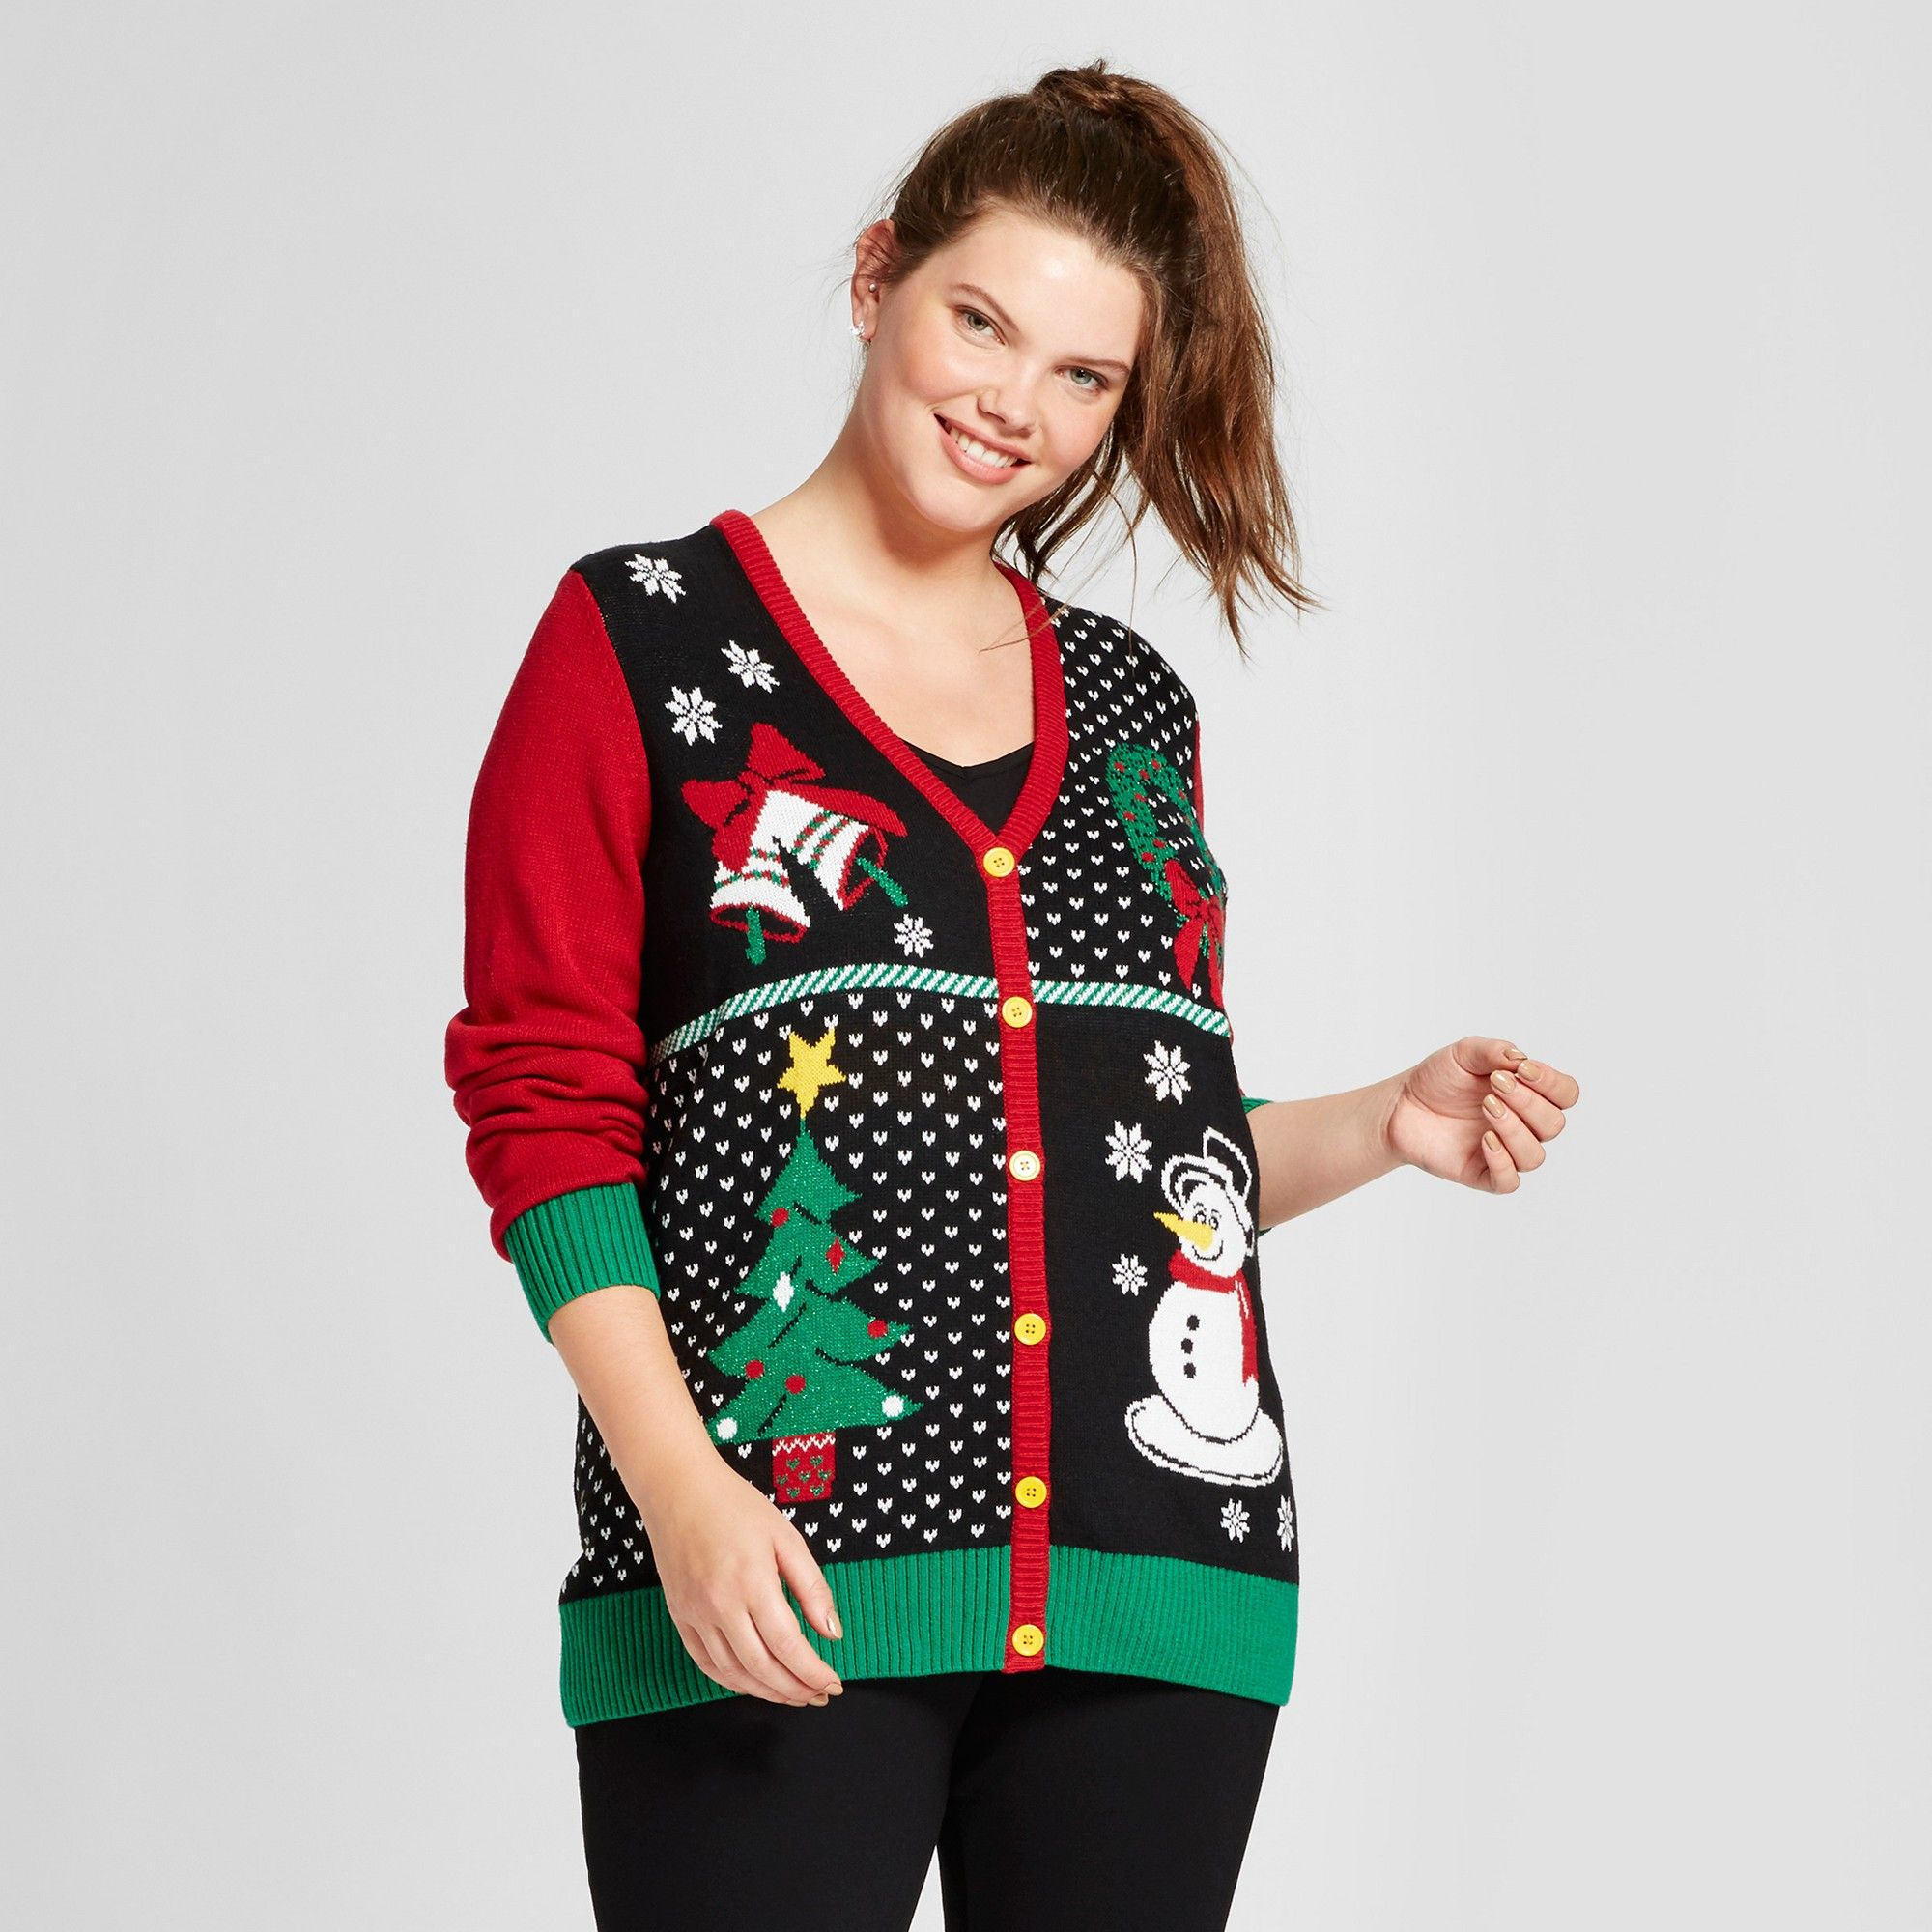 Womenus plus size santa vneck cardigan ugly christmas sweater